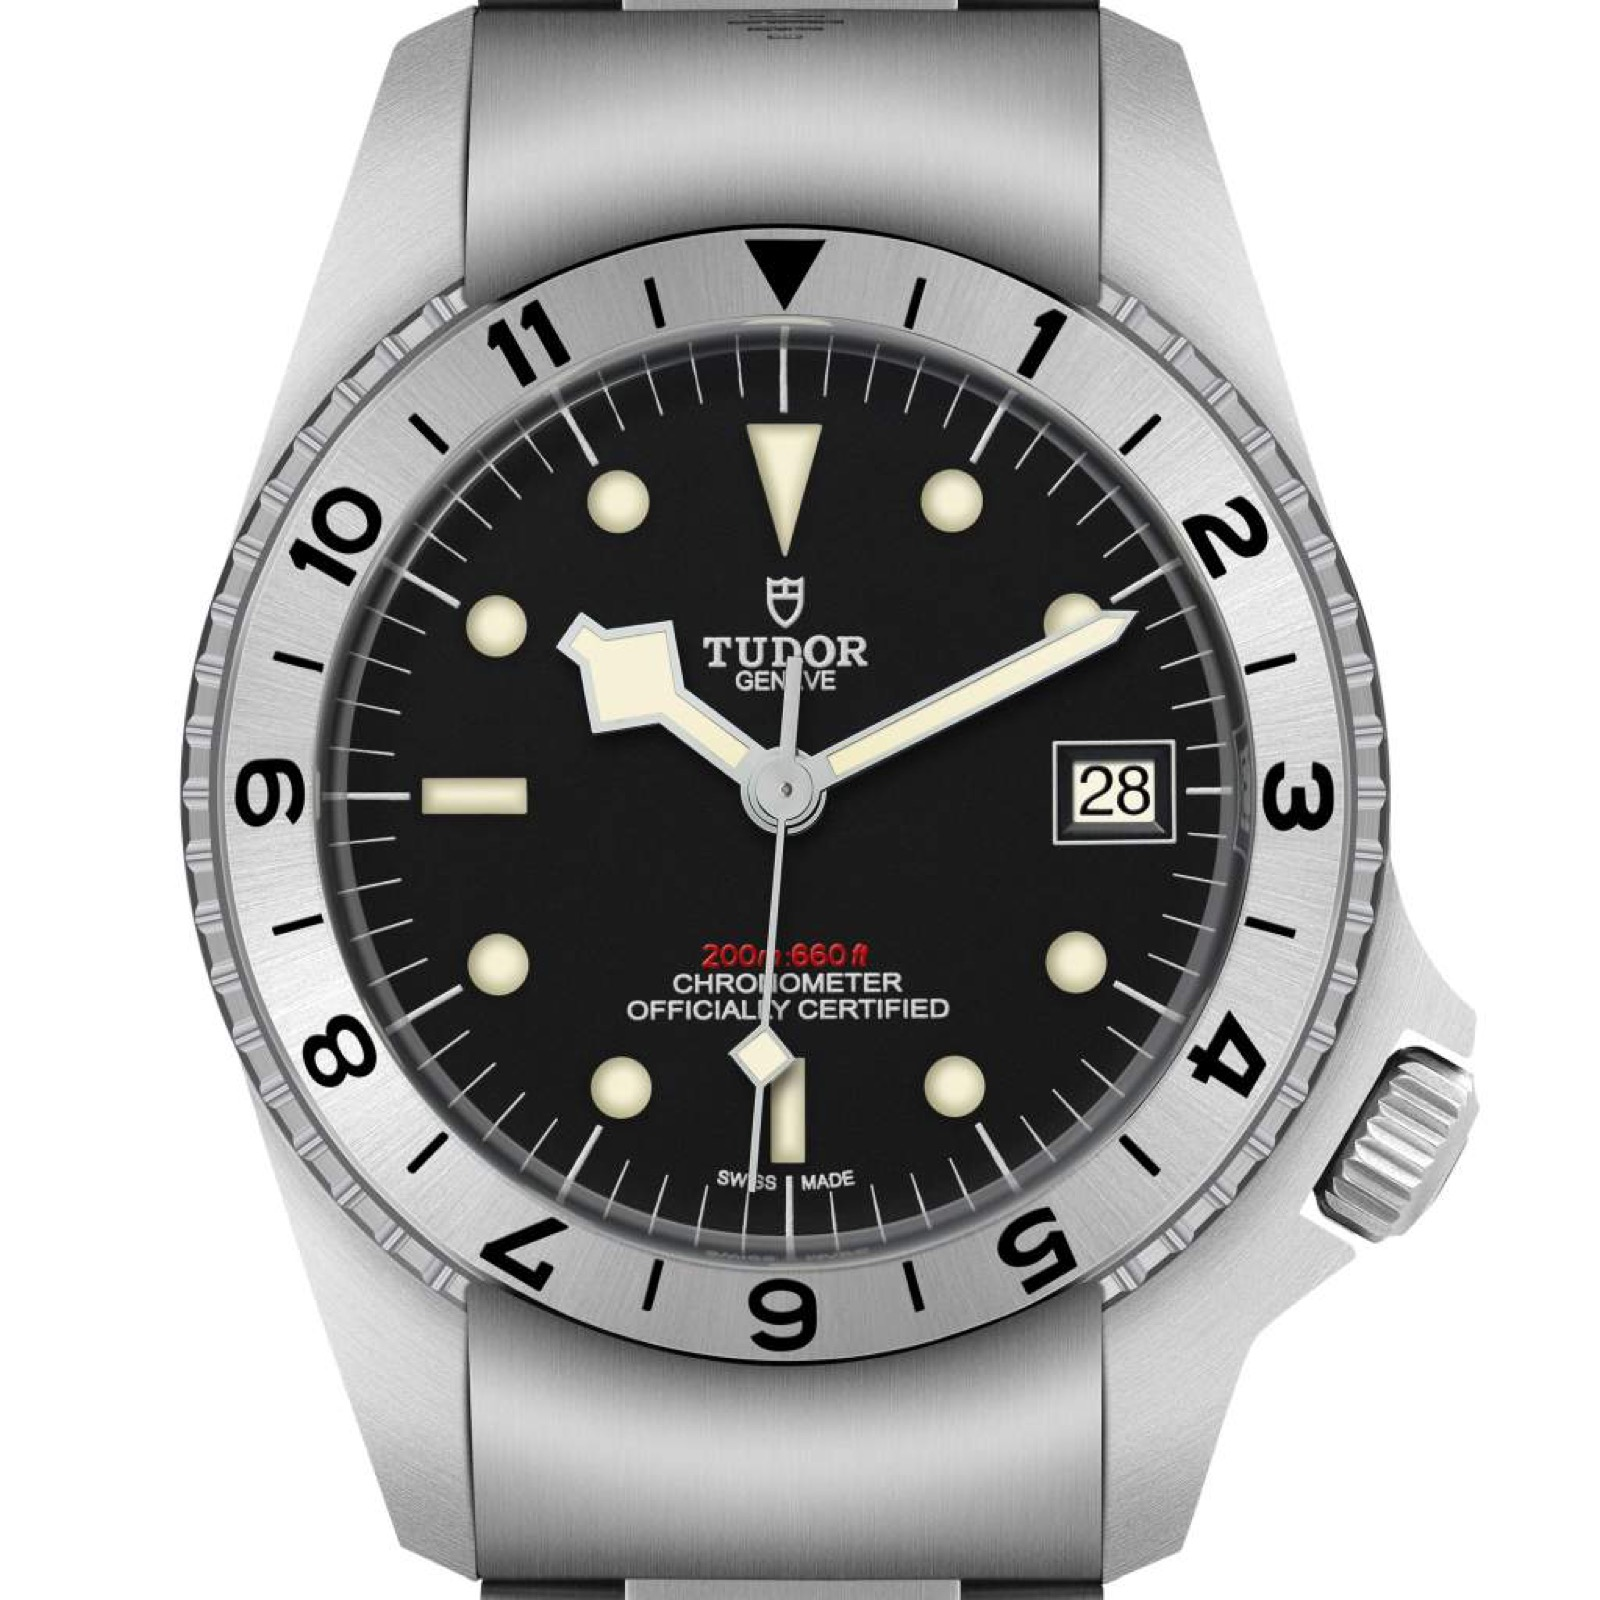 GPHG 2019 Tudor Black Bay P01